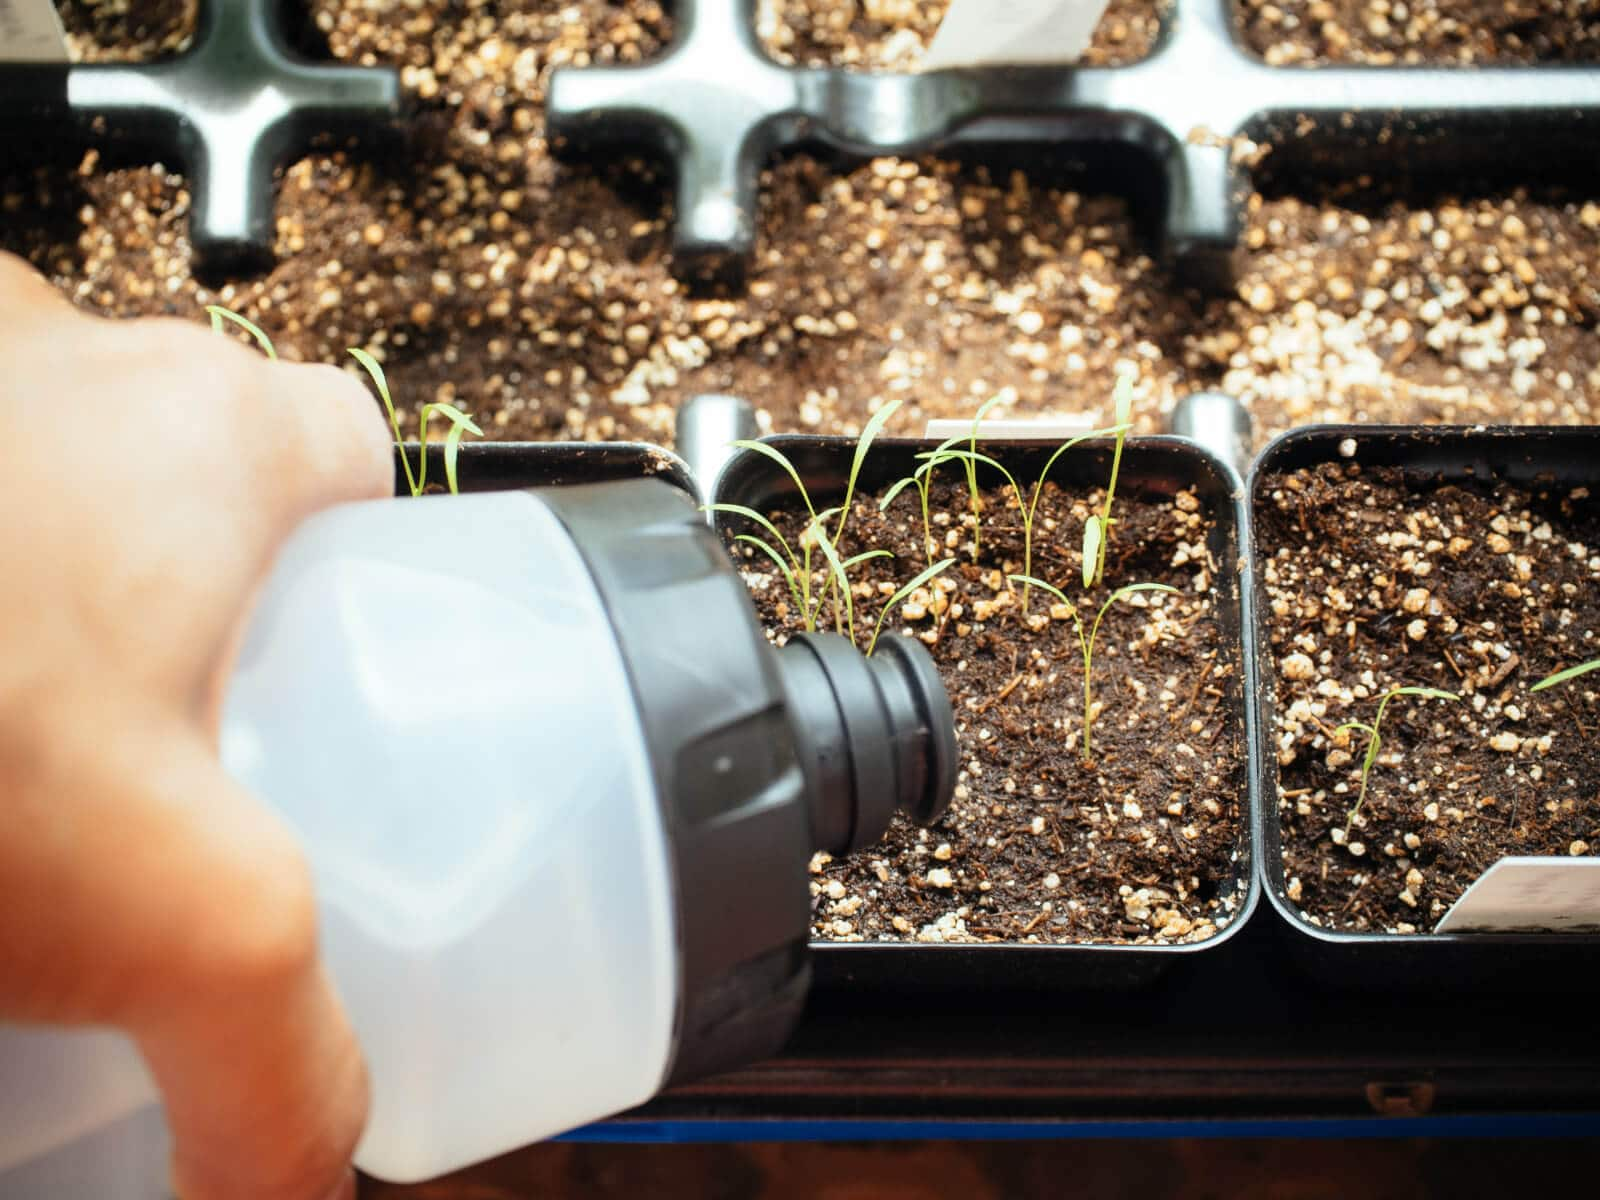 Watering newly sprouted seedlings in seedling trays